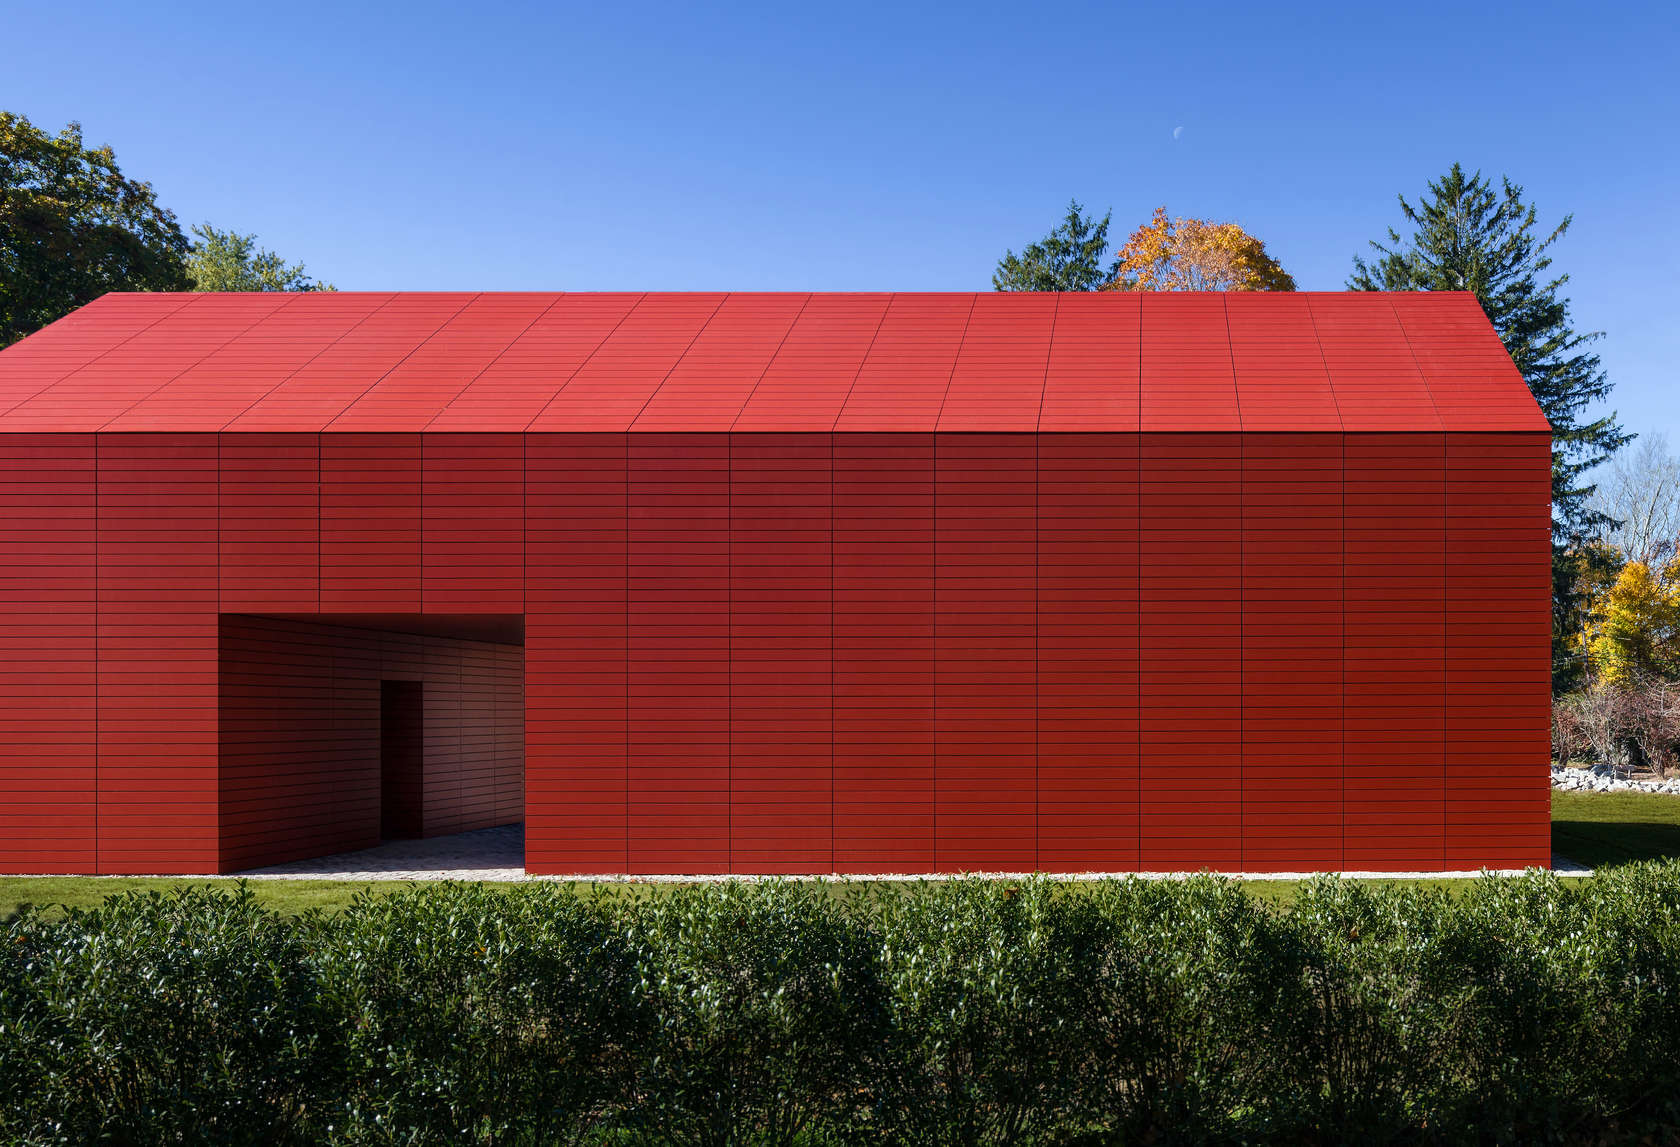 View of Red Barn's entrance designed by Roger Ferris + Partners